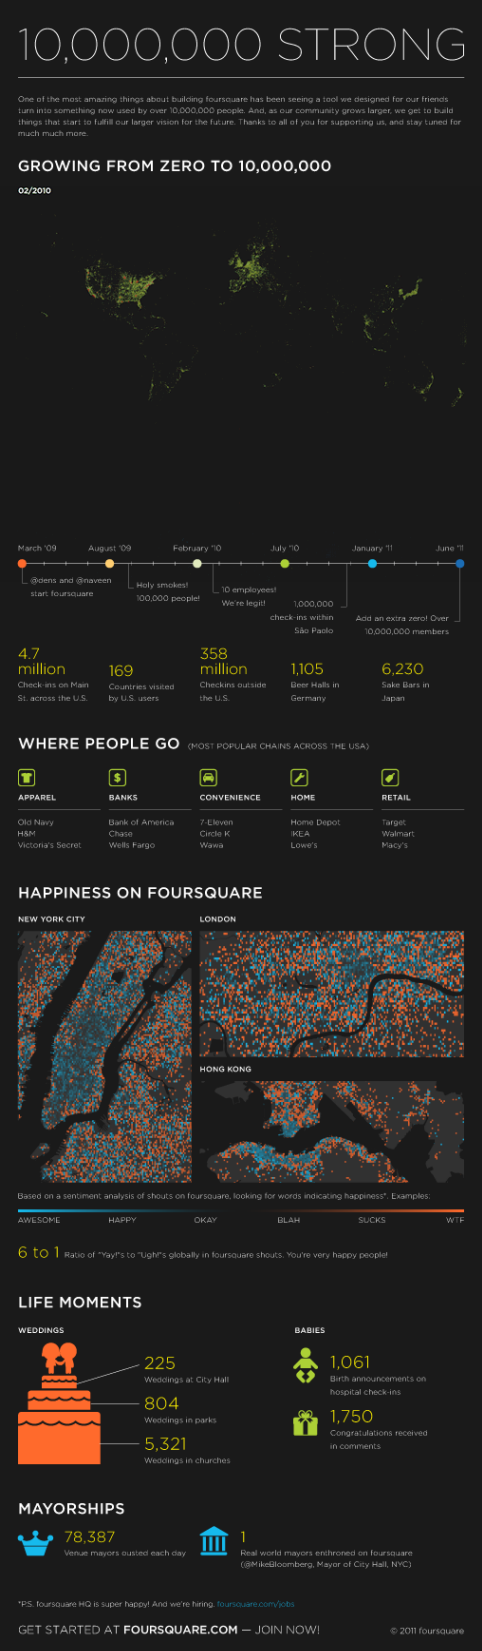 foursquare ten million